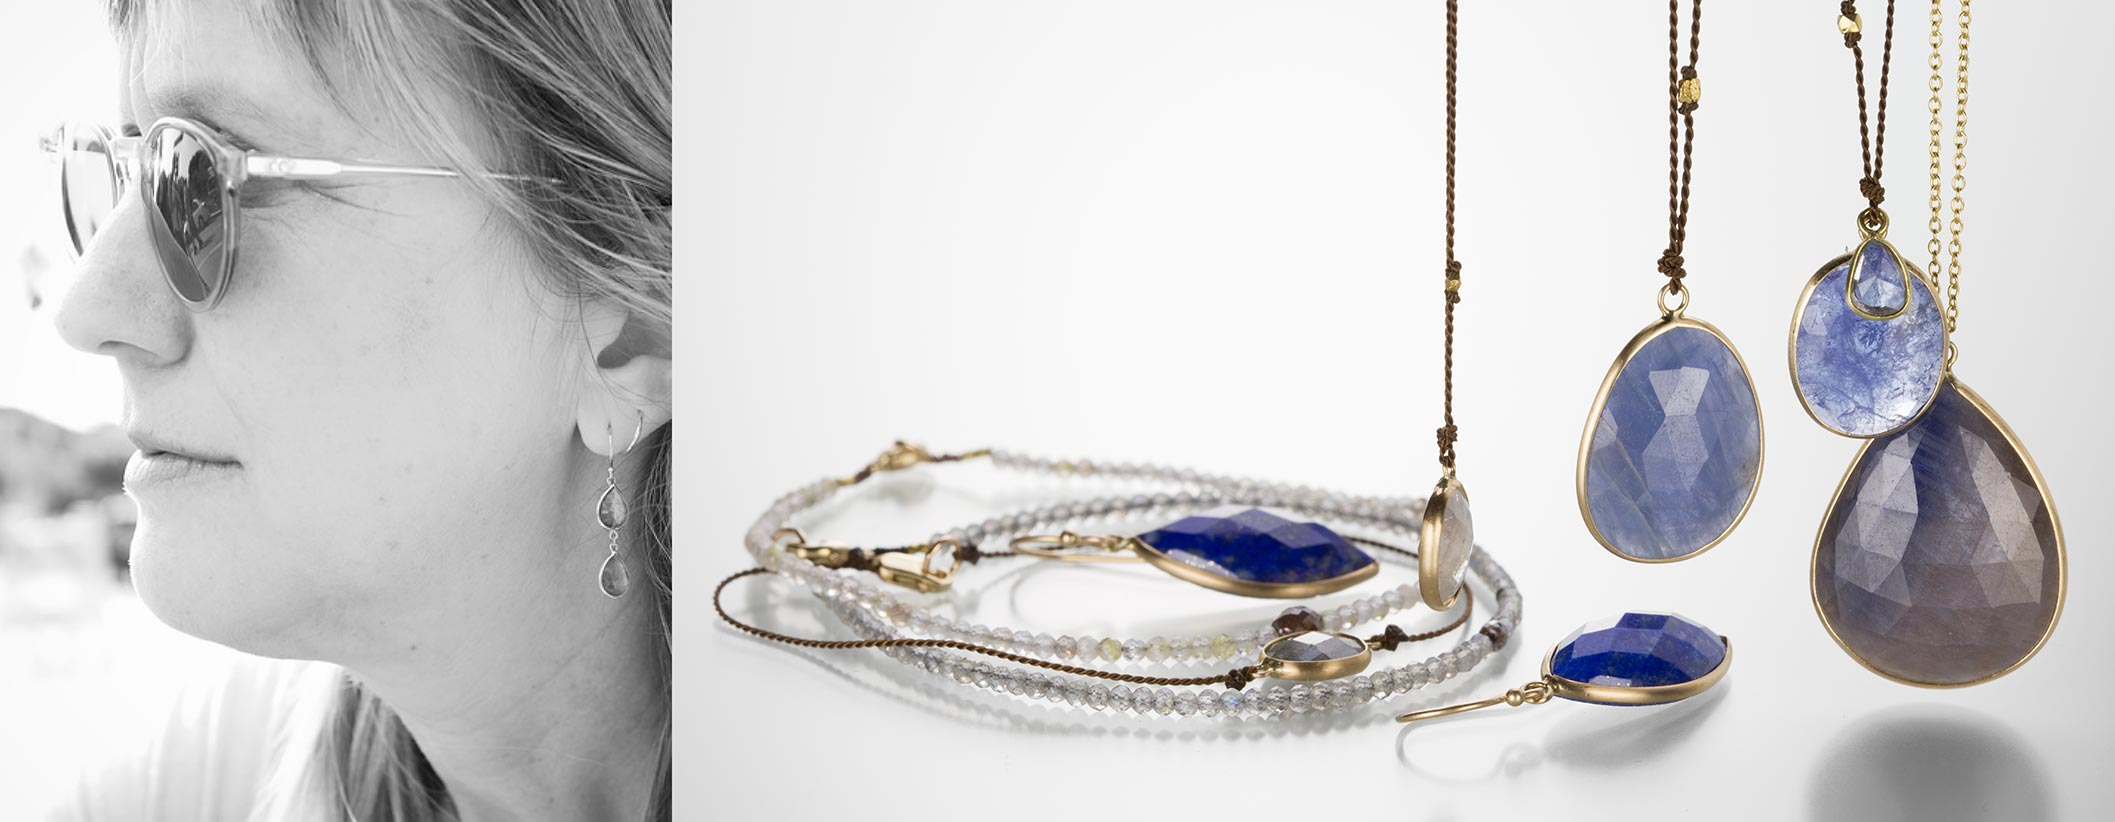 Shop Margaret Solow jewelry at Quadrum, located in the Greater Boston Area, featuring an extensive collection of gemstone necklaces on nylon cords, beaded bracelets and tiny diamond pendants.